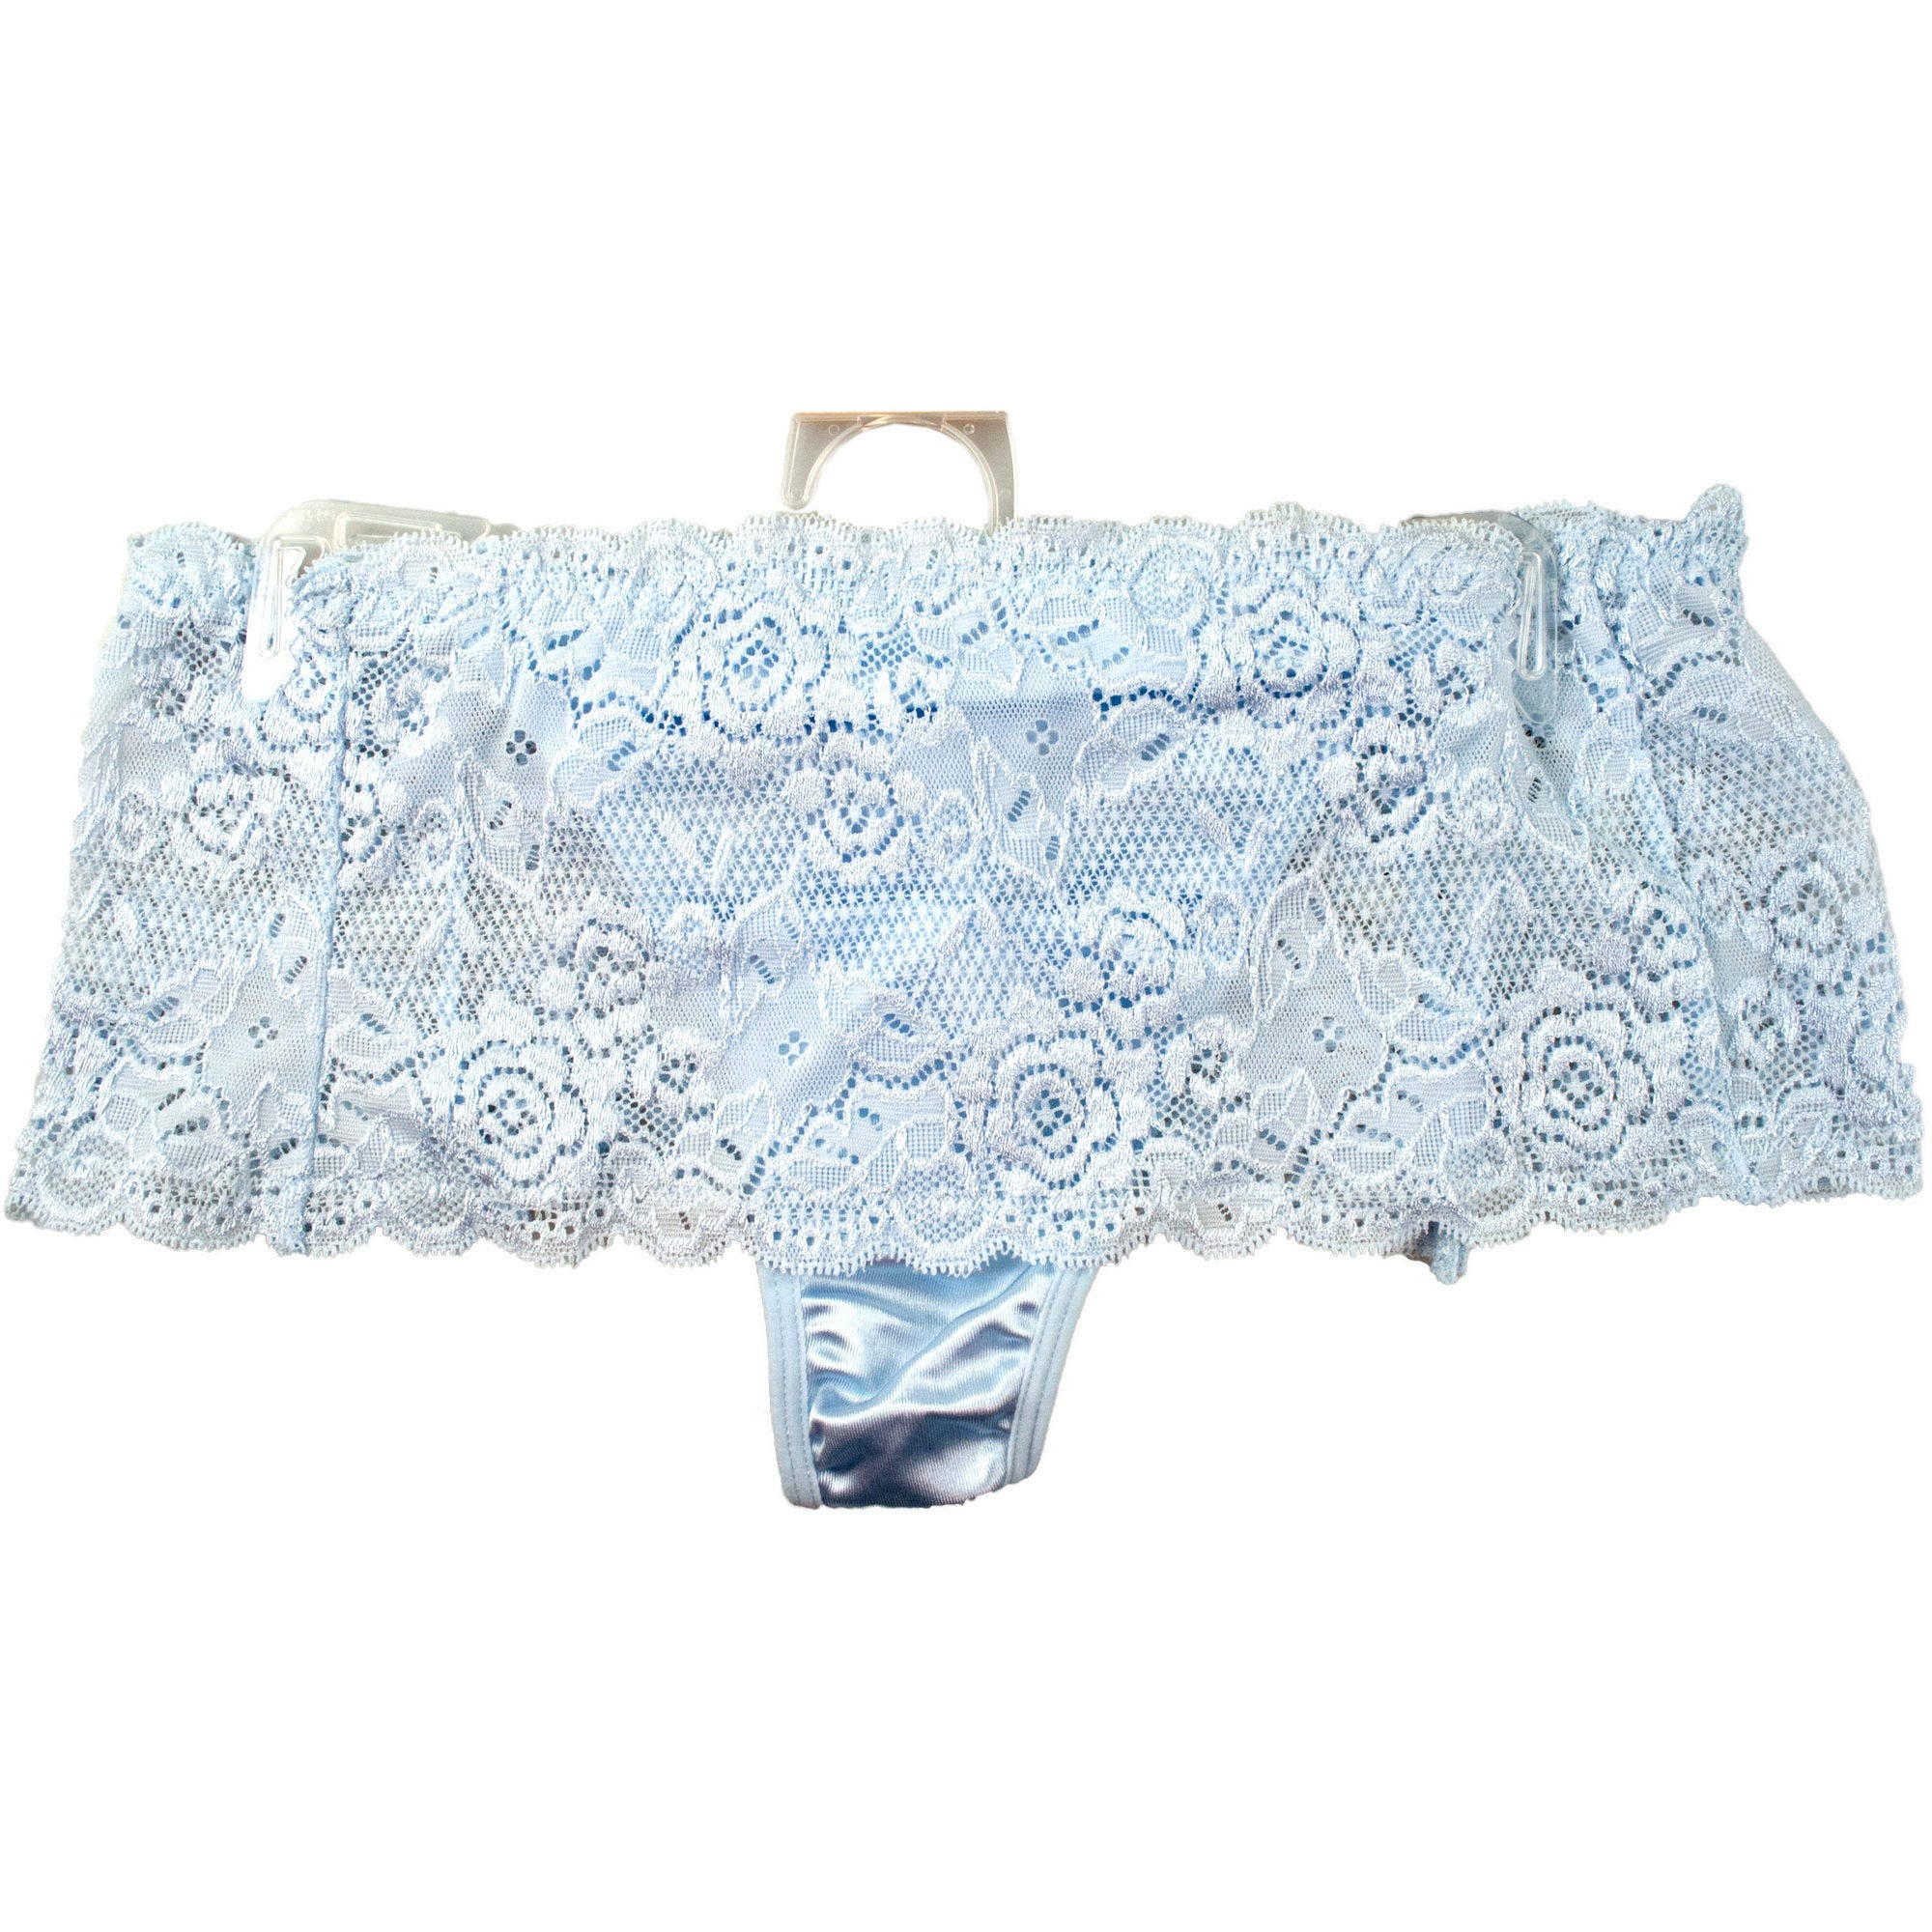 96d71456e Wholesale Underwear now available at Wholesale Central - Items 1 - 40